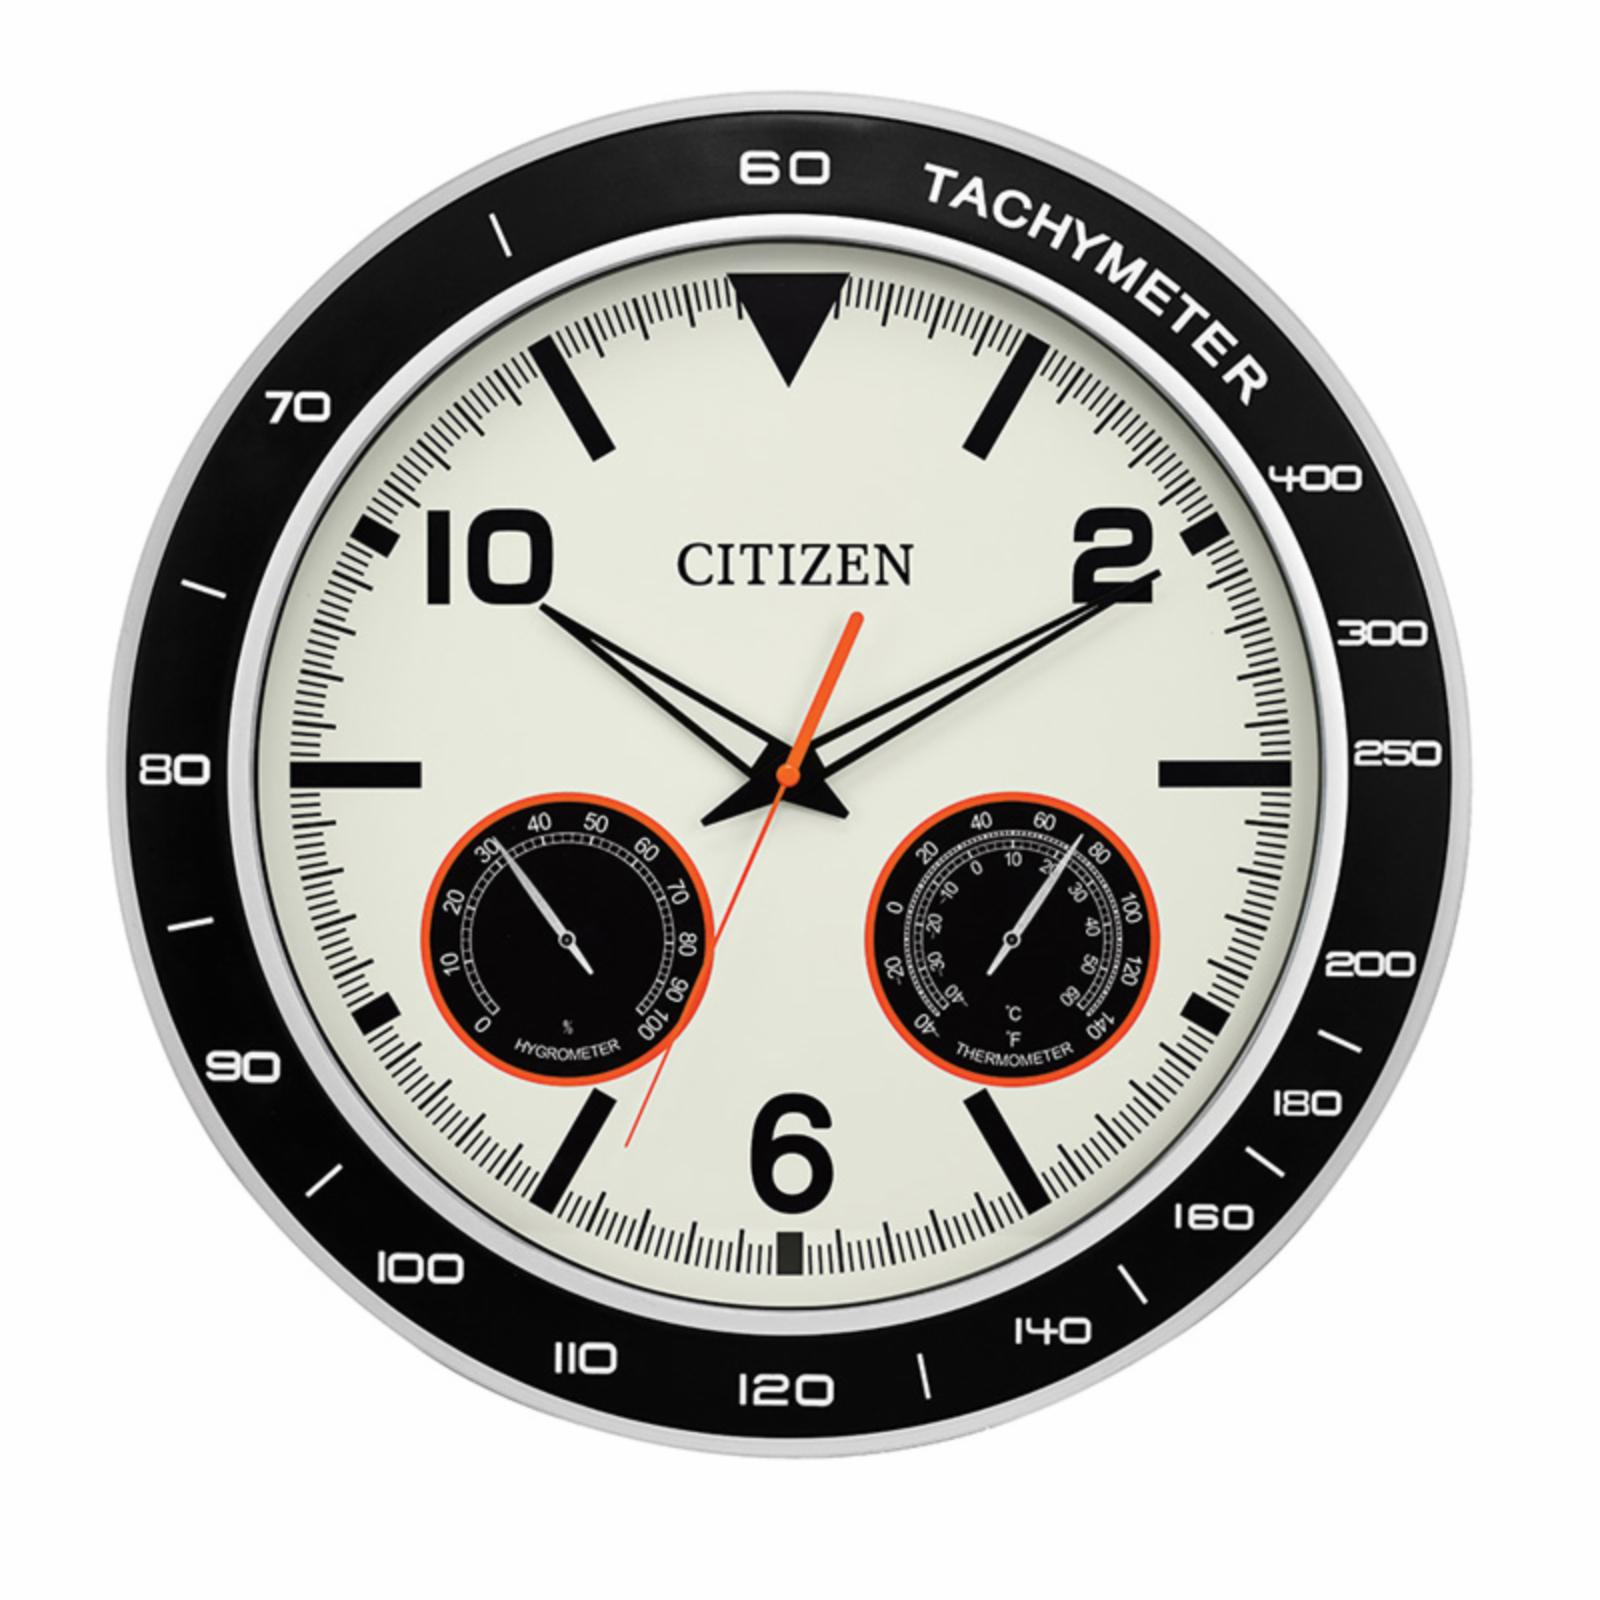 Citizen Clocks 18 in. Outdoor Water-Resistant Circular Wall Clock - CC2019